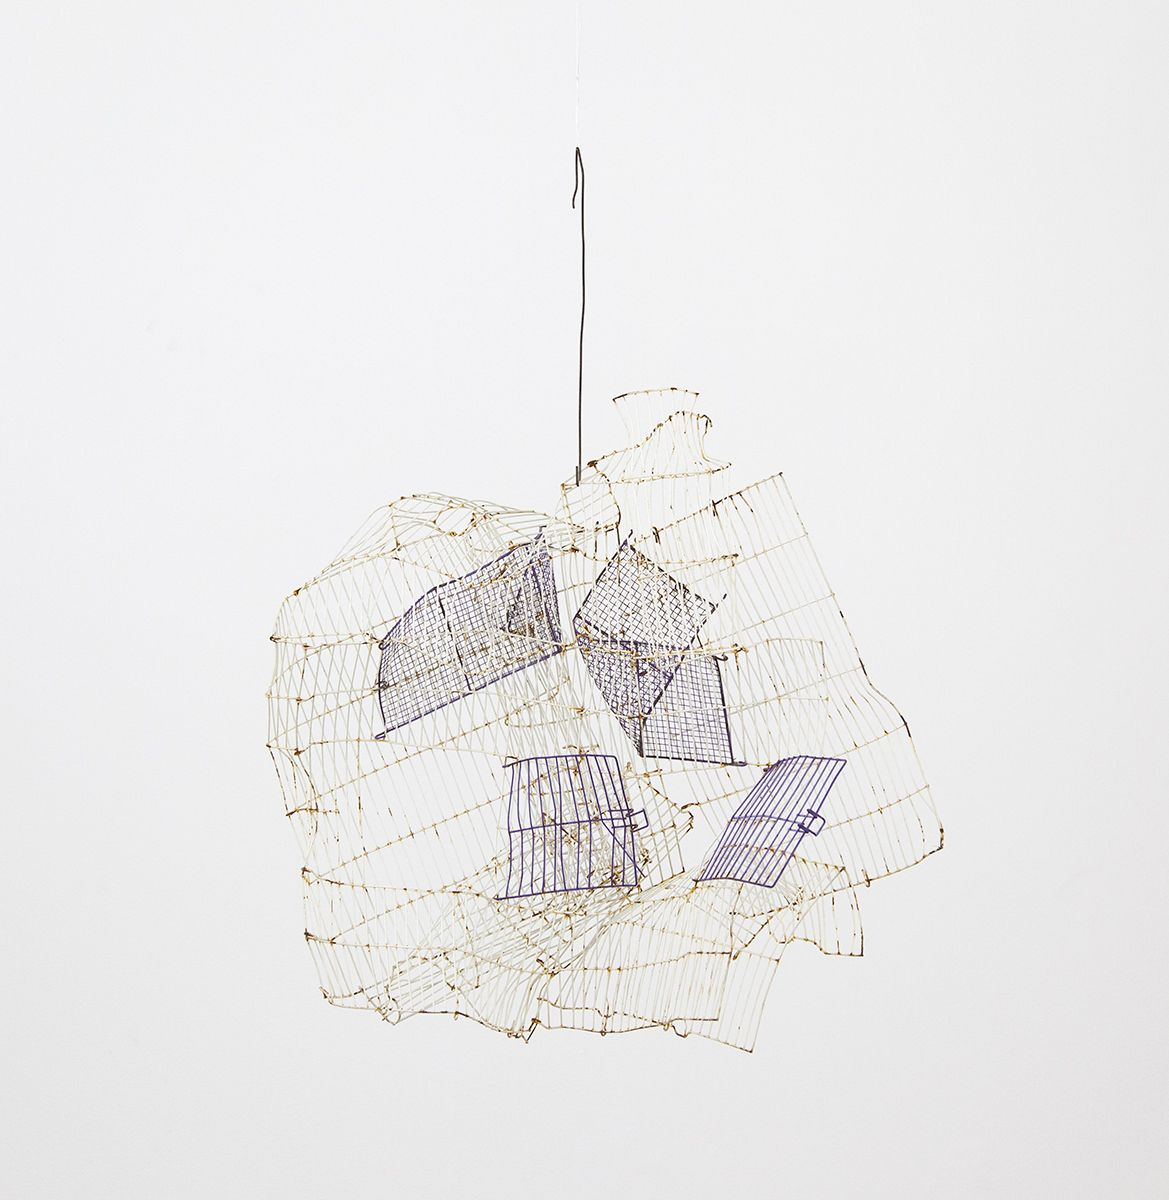 Gedi Sibony  The Shivered, 2018  Birdcage, wire  34 x 26 x 12 inches (86.4 x 66 x 30.5 cm)